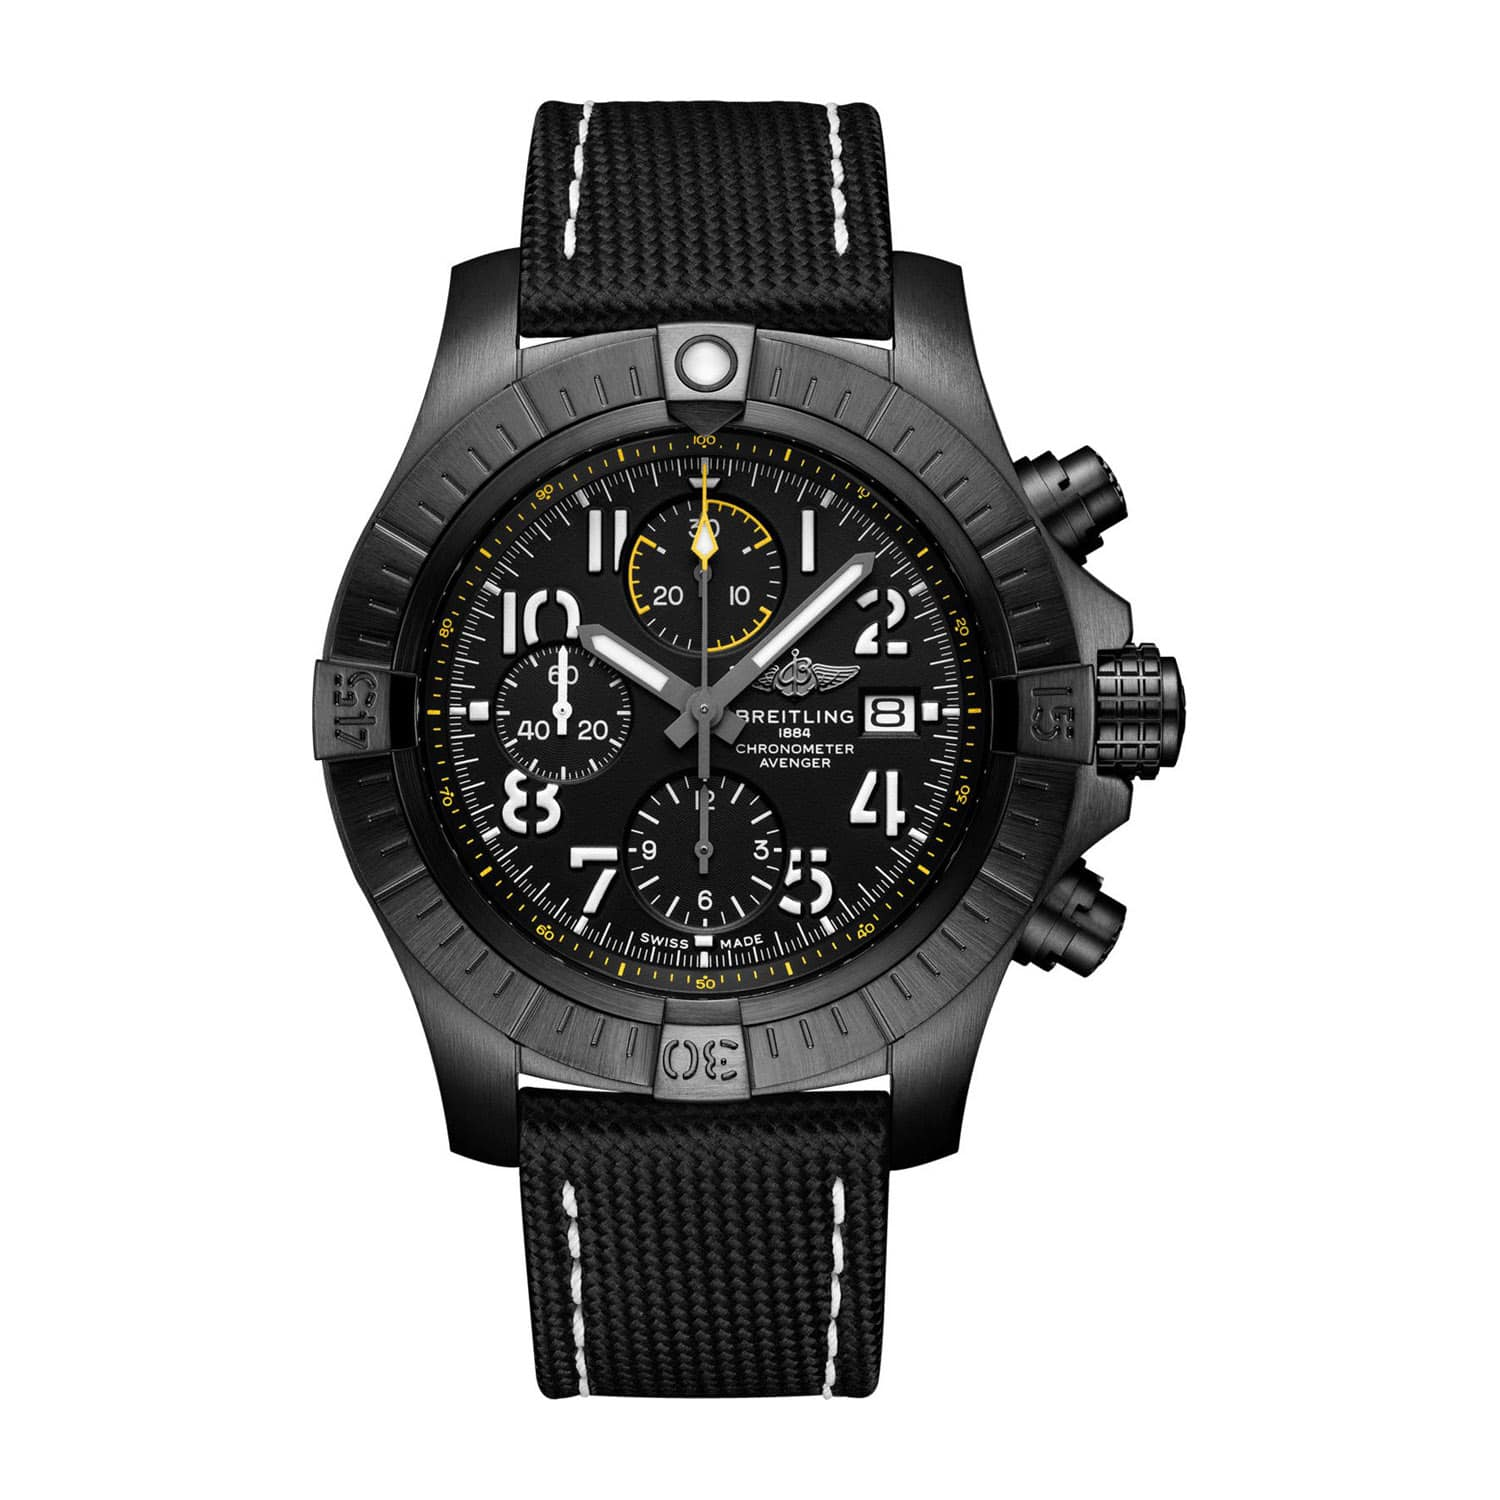 Breitling Avenger 45mm Chronograph Night Mission Black Titanium Case Watch